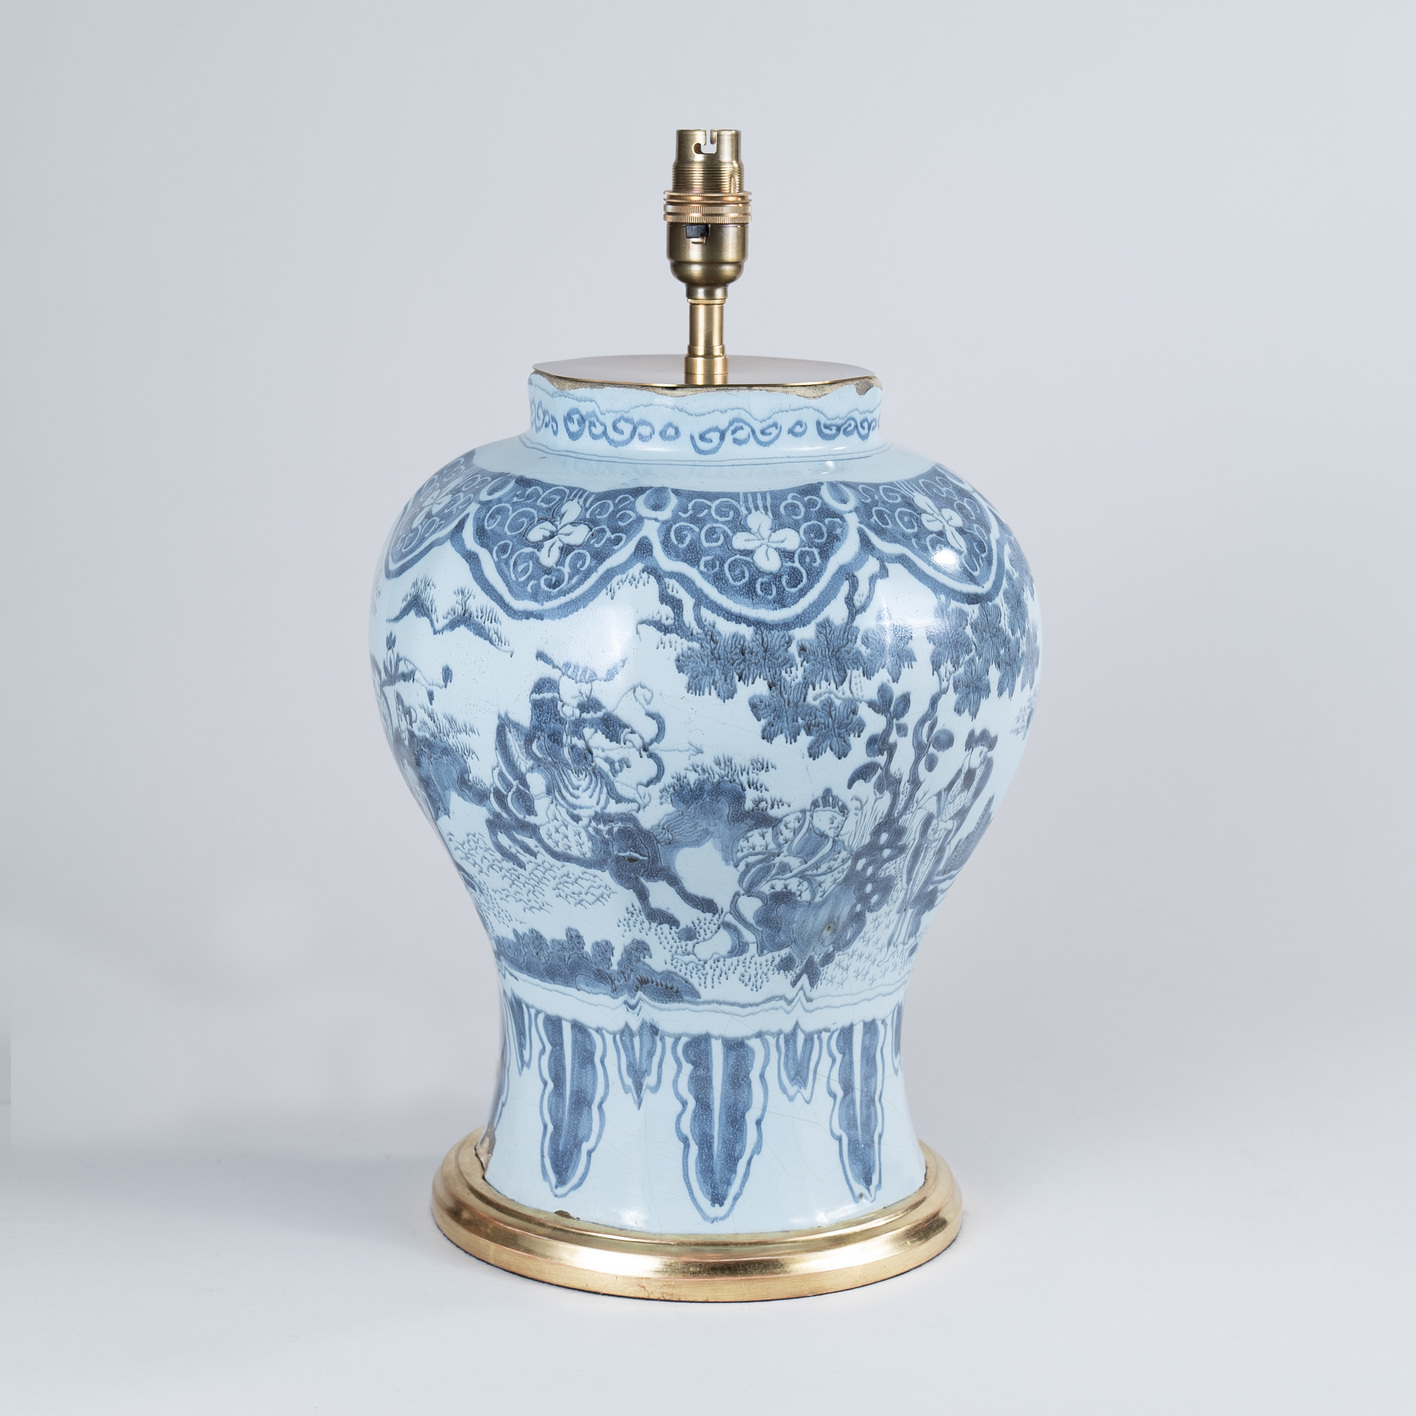 Early 18th century Dutch Delft Blue and White Octagonal Vase, Lamped